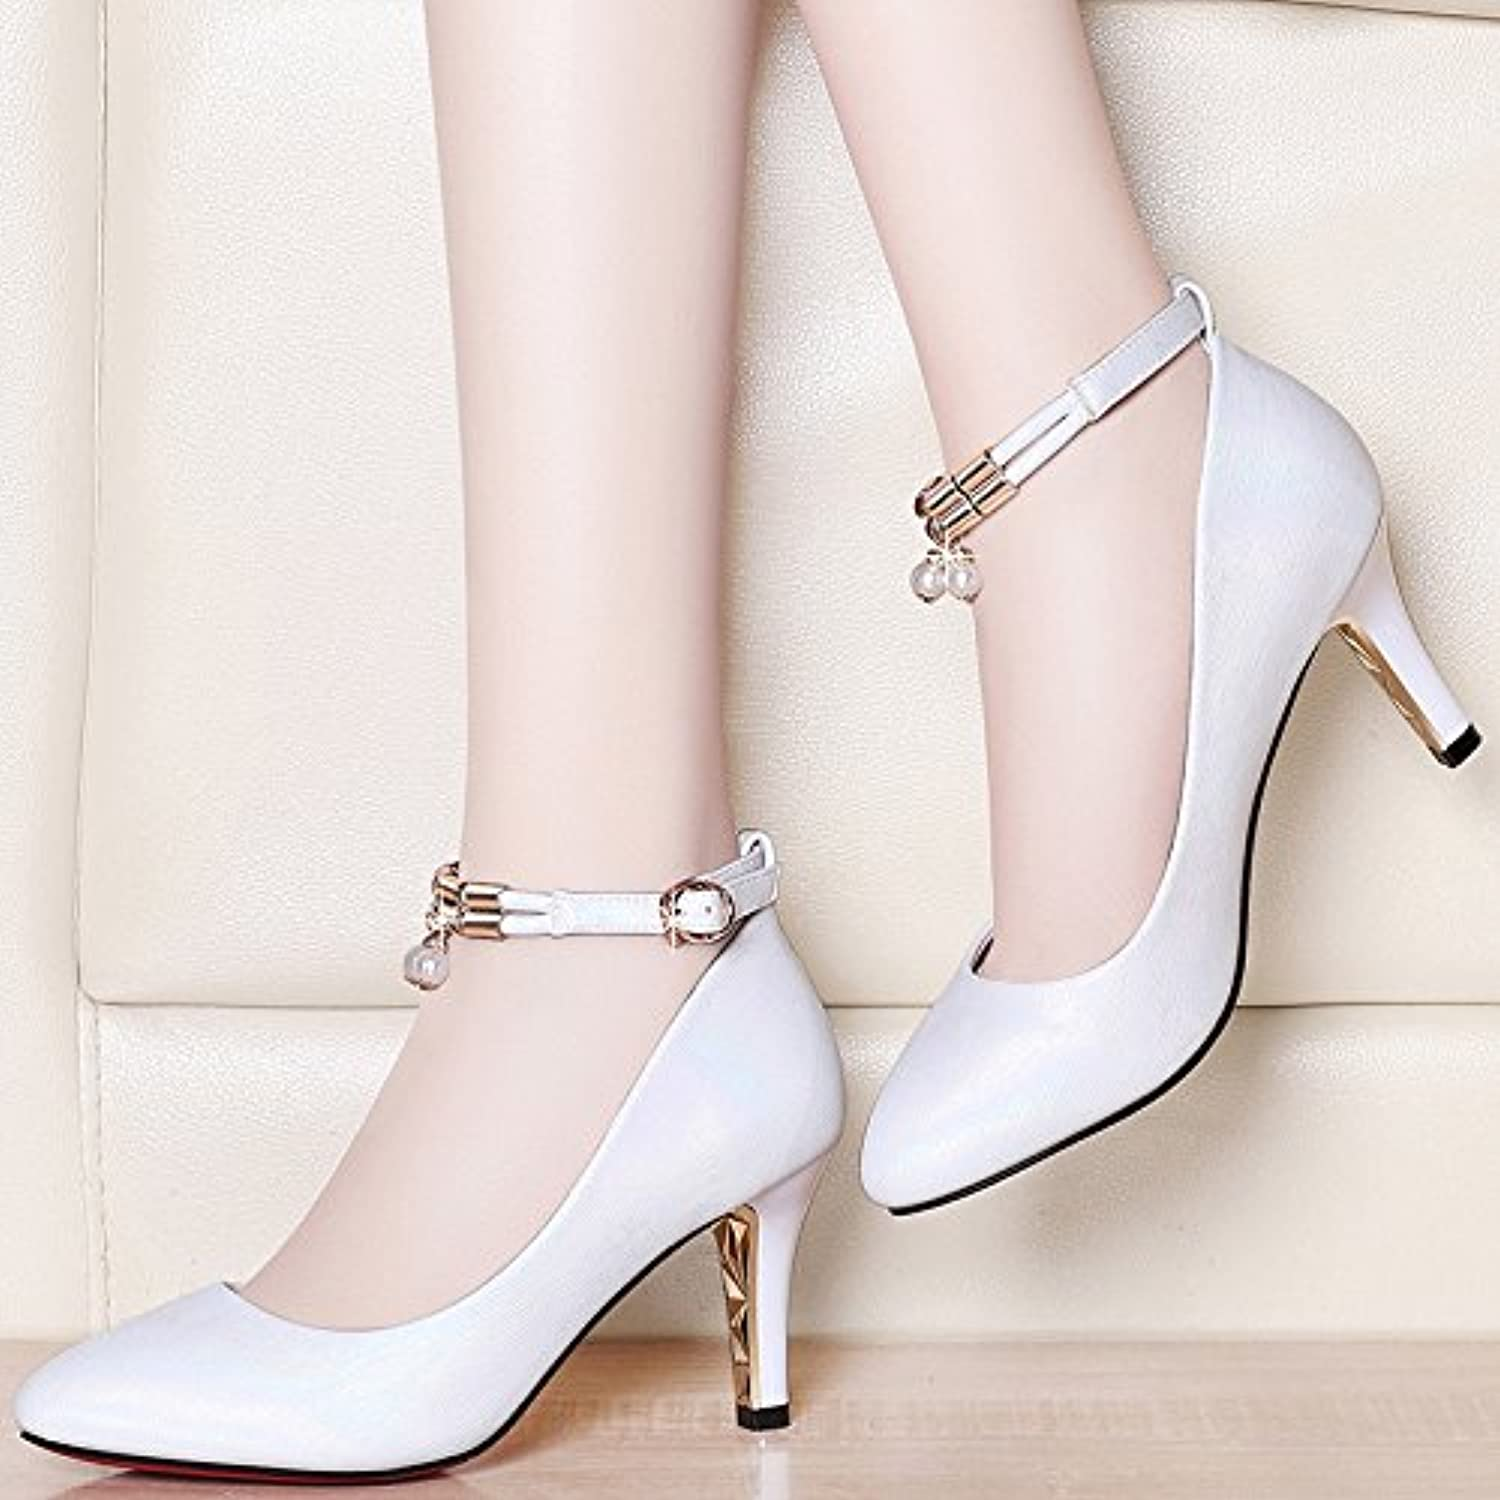 f26c5db3863 Jqdyl High High High heels Spring And Summer Women S Shoes Buckle High Heels  Ol Fine With Pointed Professional Shoes Women... B07DNBRTZF Parent 5cb6b7